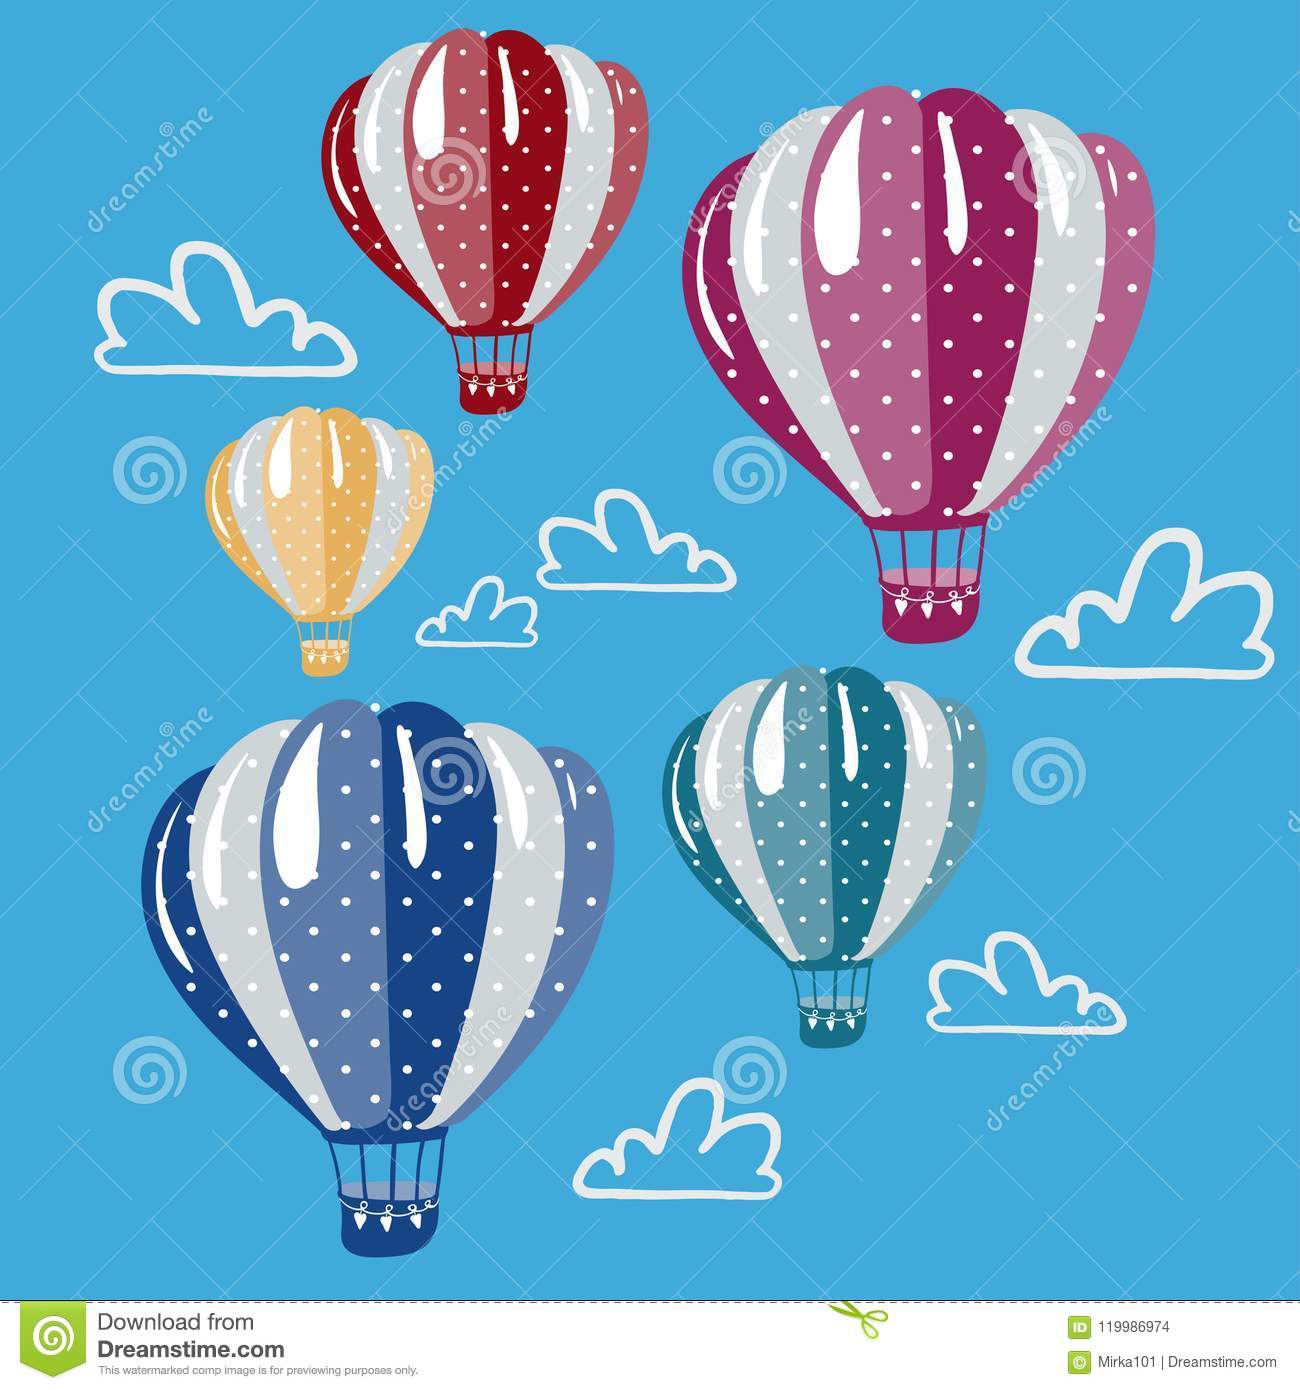 Set of colorful hot air balloons in the sky